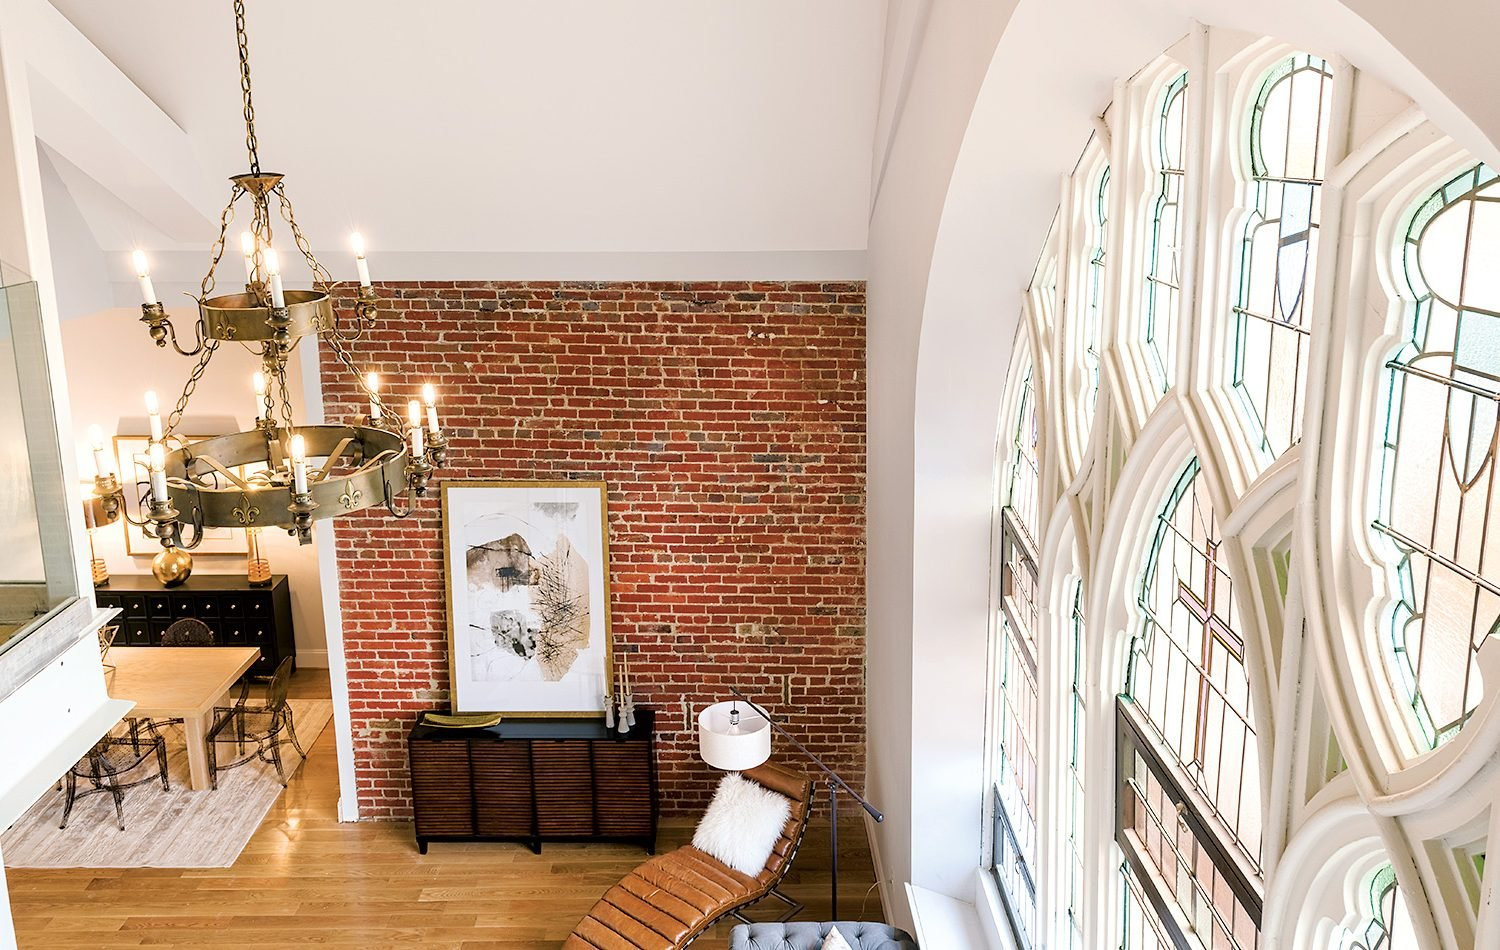 We Can't Get Over the Windows In This Converted-Church Condo